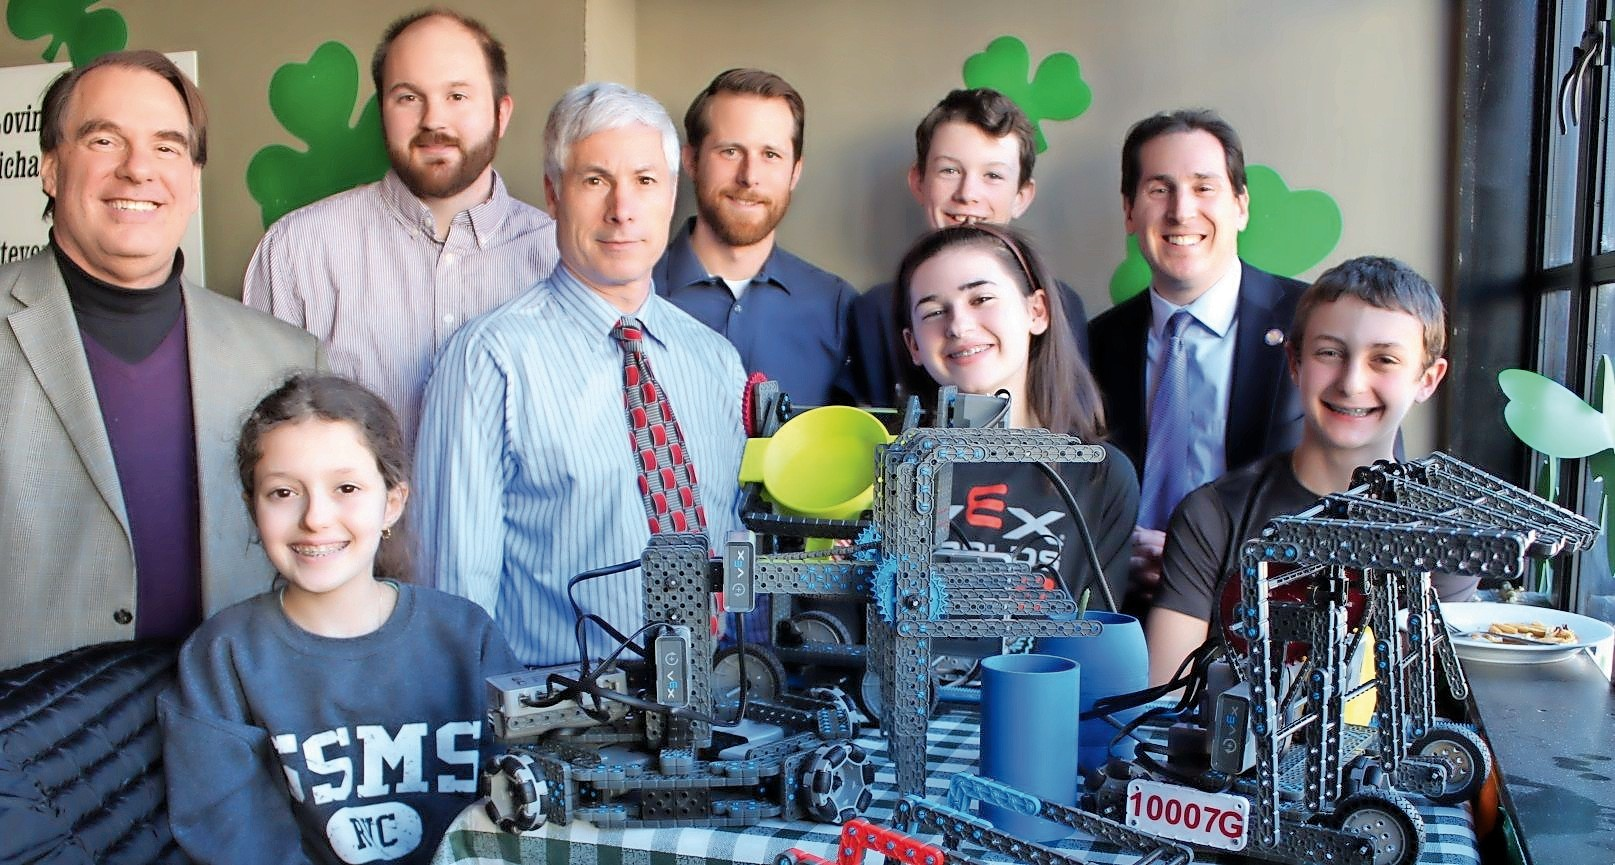 The SSMS robotics team raised over $4,000 during guest bartending night at Monaghan's on March 23. Team members Melanie Koren (front bottom left), Alisa Barker (front second from right), T.J. Egan (back row second from right) and Will Koren (front far right) are heading to the world championships in Kentucky from April 23-25.